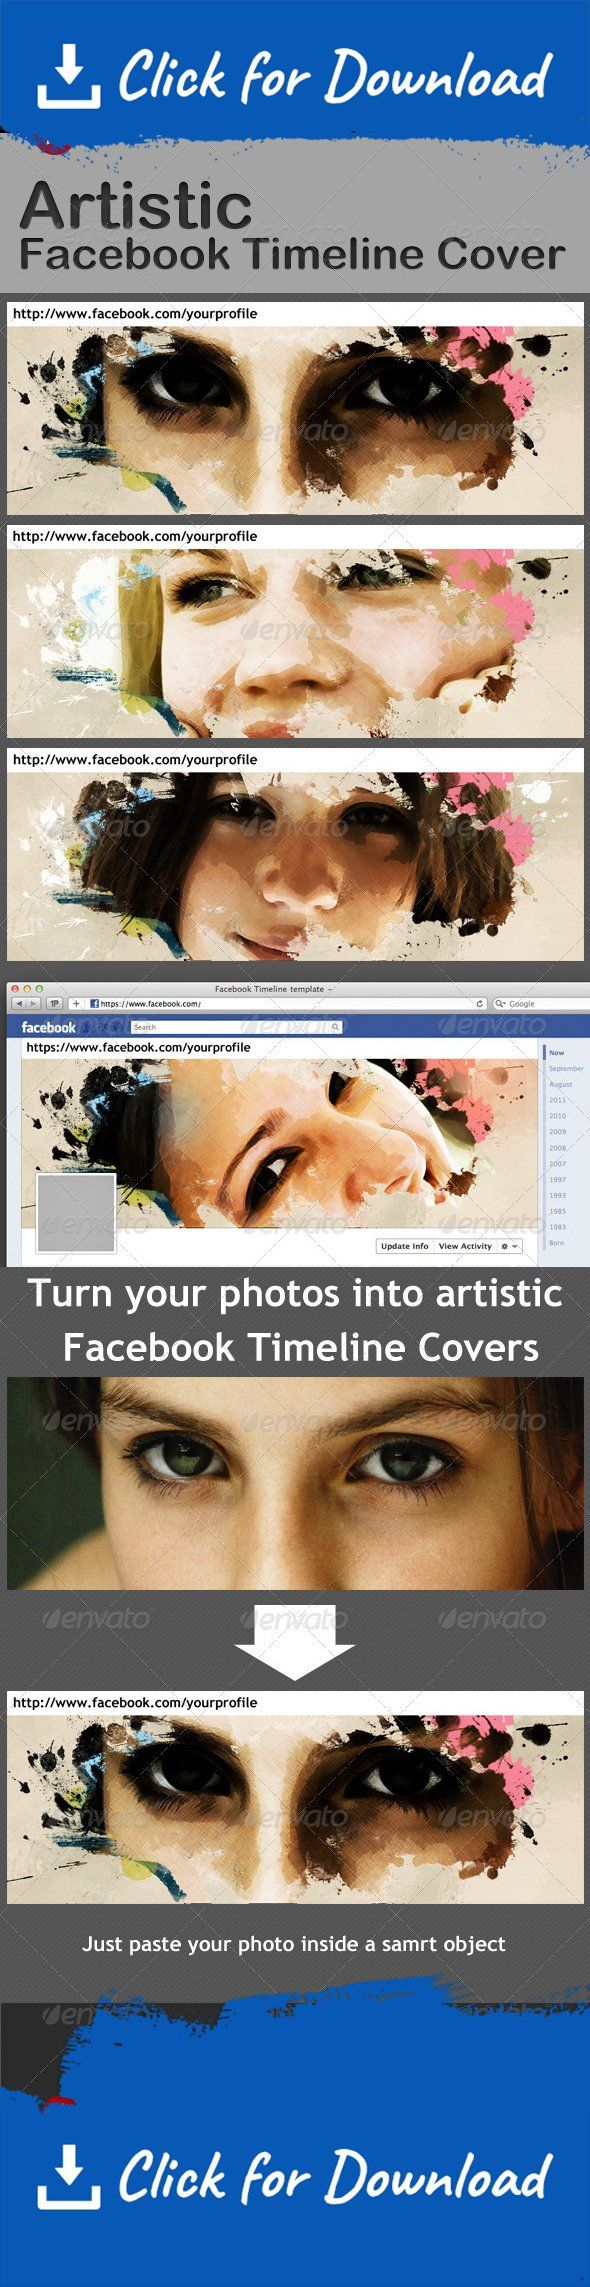 artistic, cover, drawing, effect, facebook, facebook cover, painting, photo, timeline, timeline cover, watercolor You can create artistic and beautiful Facebook Timeline Covers from your photos easily. This pack includes one PSD file and Instructions.